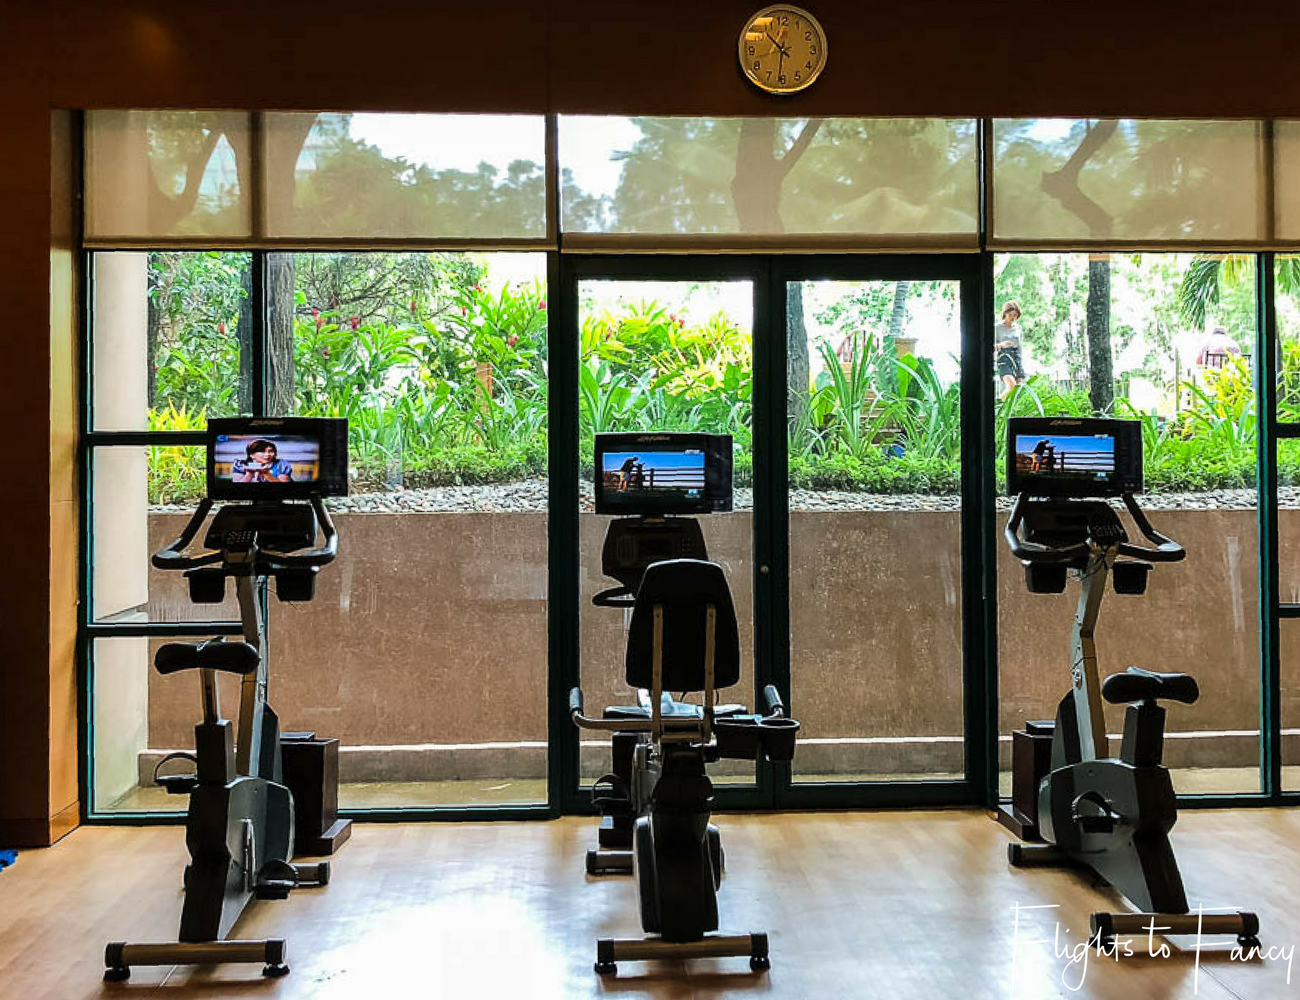 5 star hotel in Cebu City - Radisson Blue Cebu Gym by Flights to Fancy